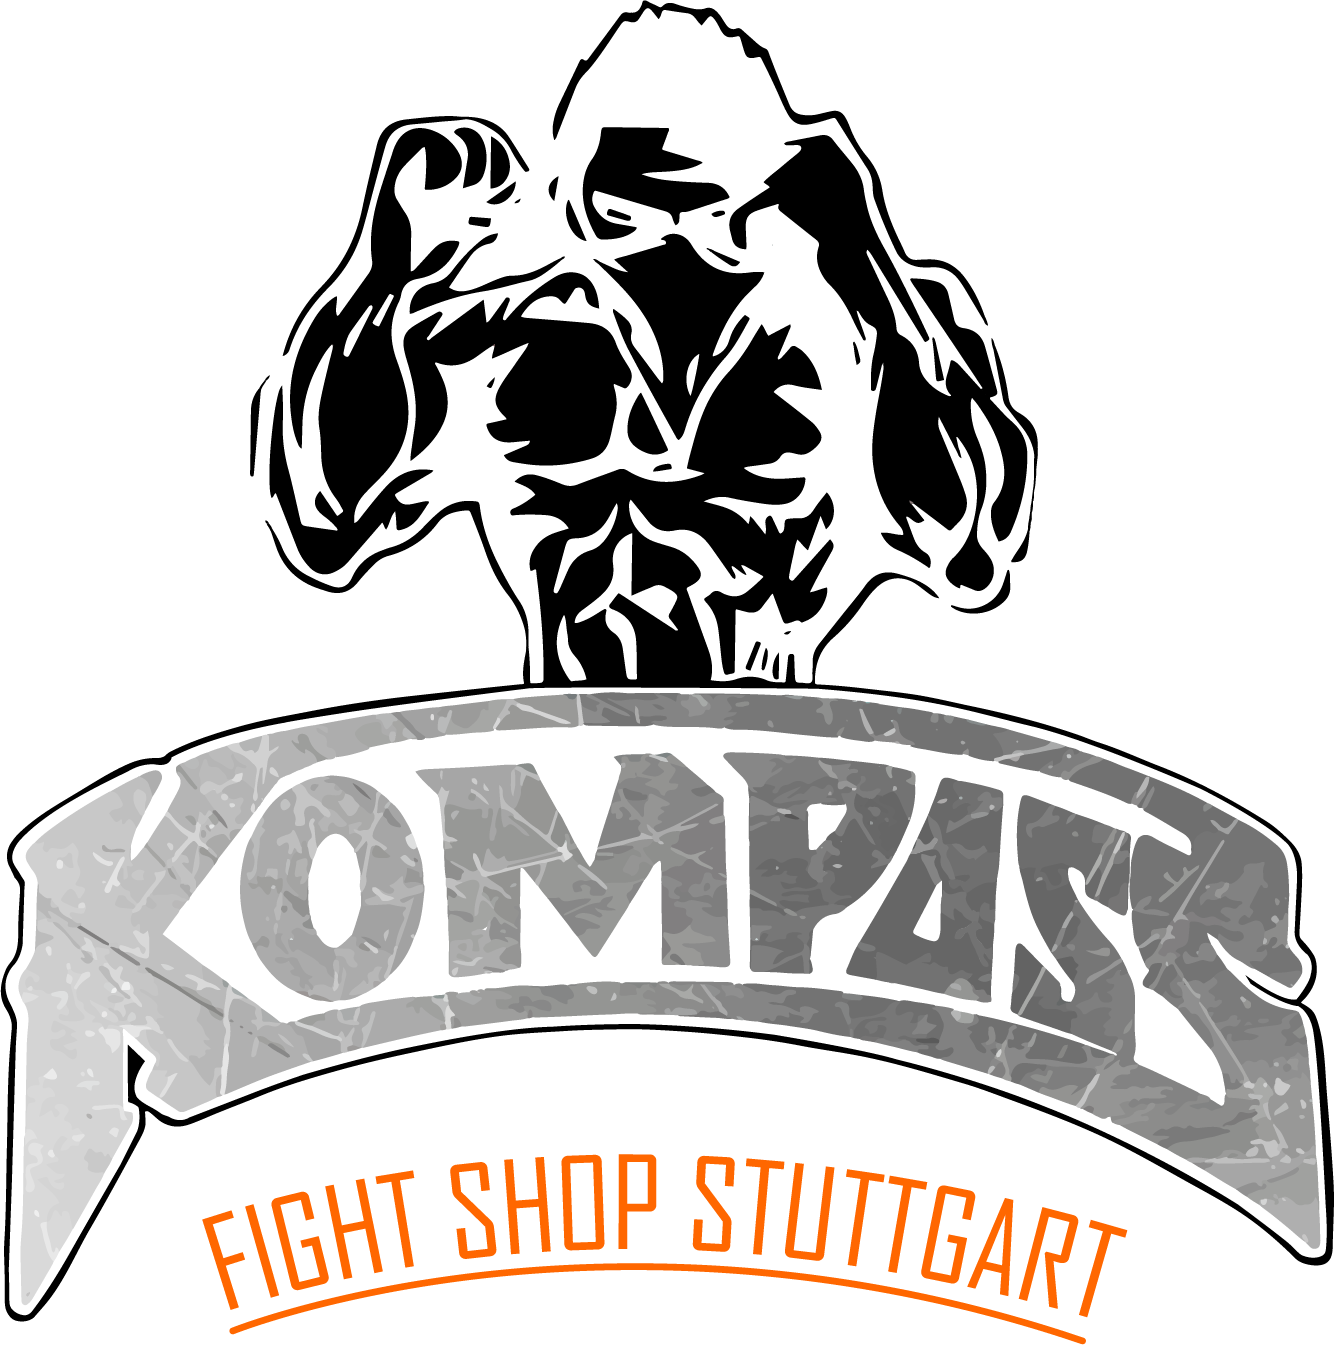 KOMPASS FIGHT SHOP STUTGART